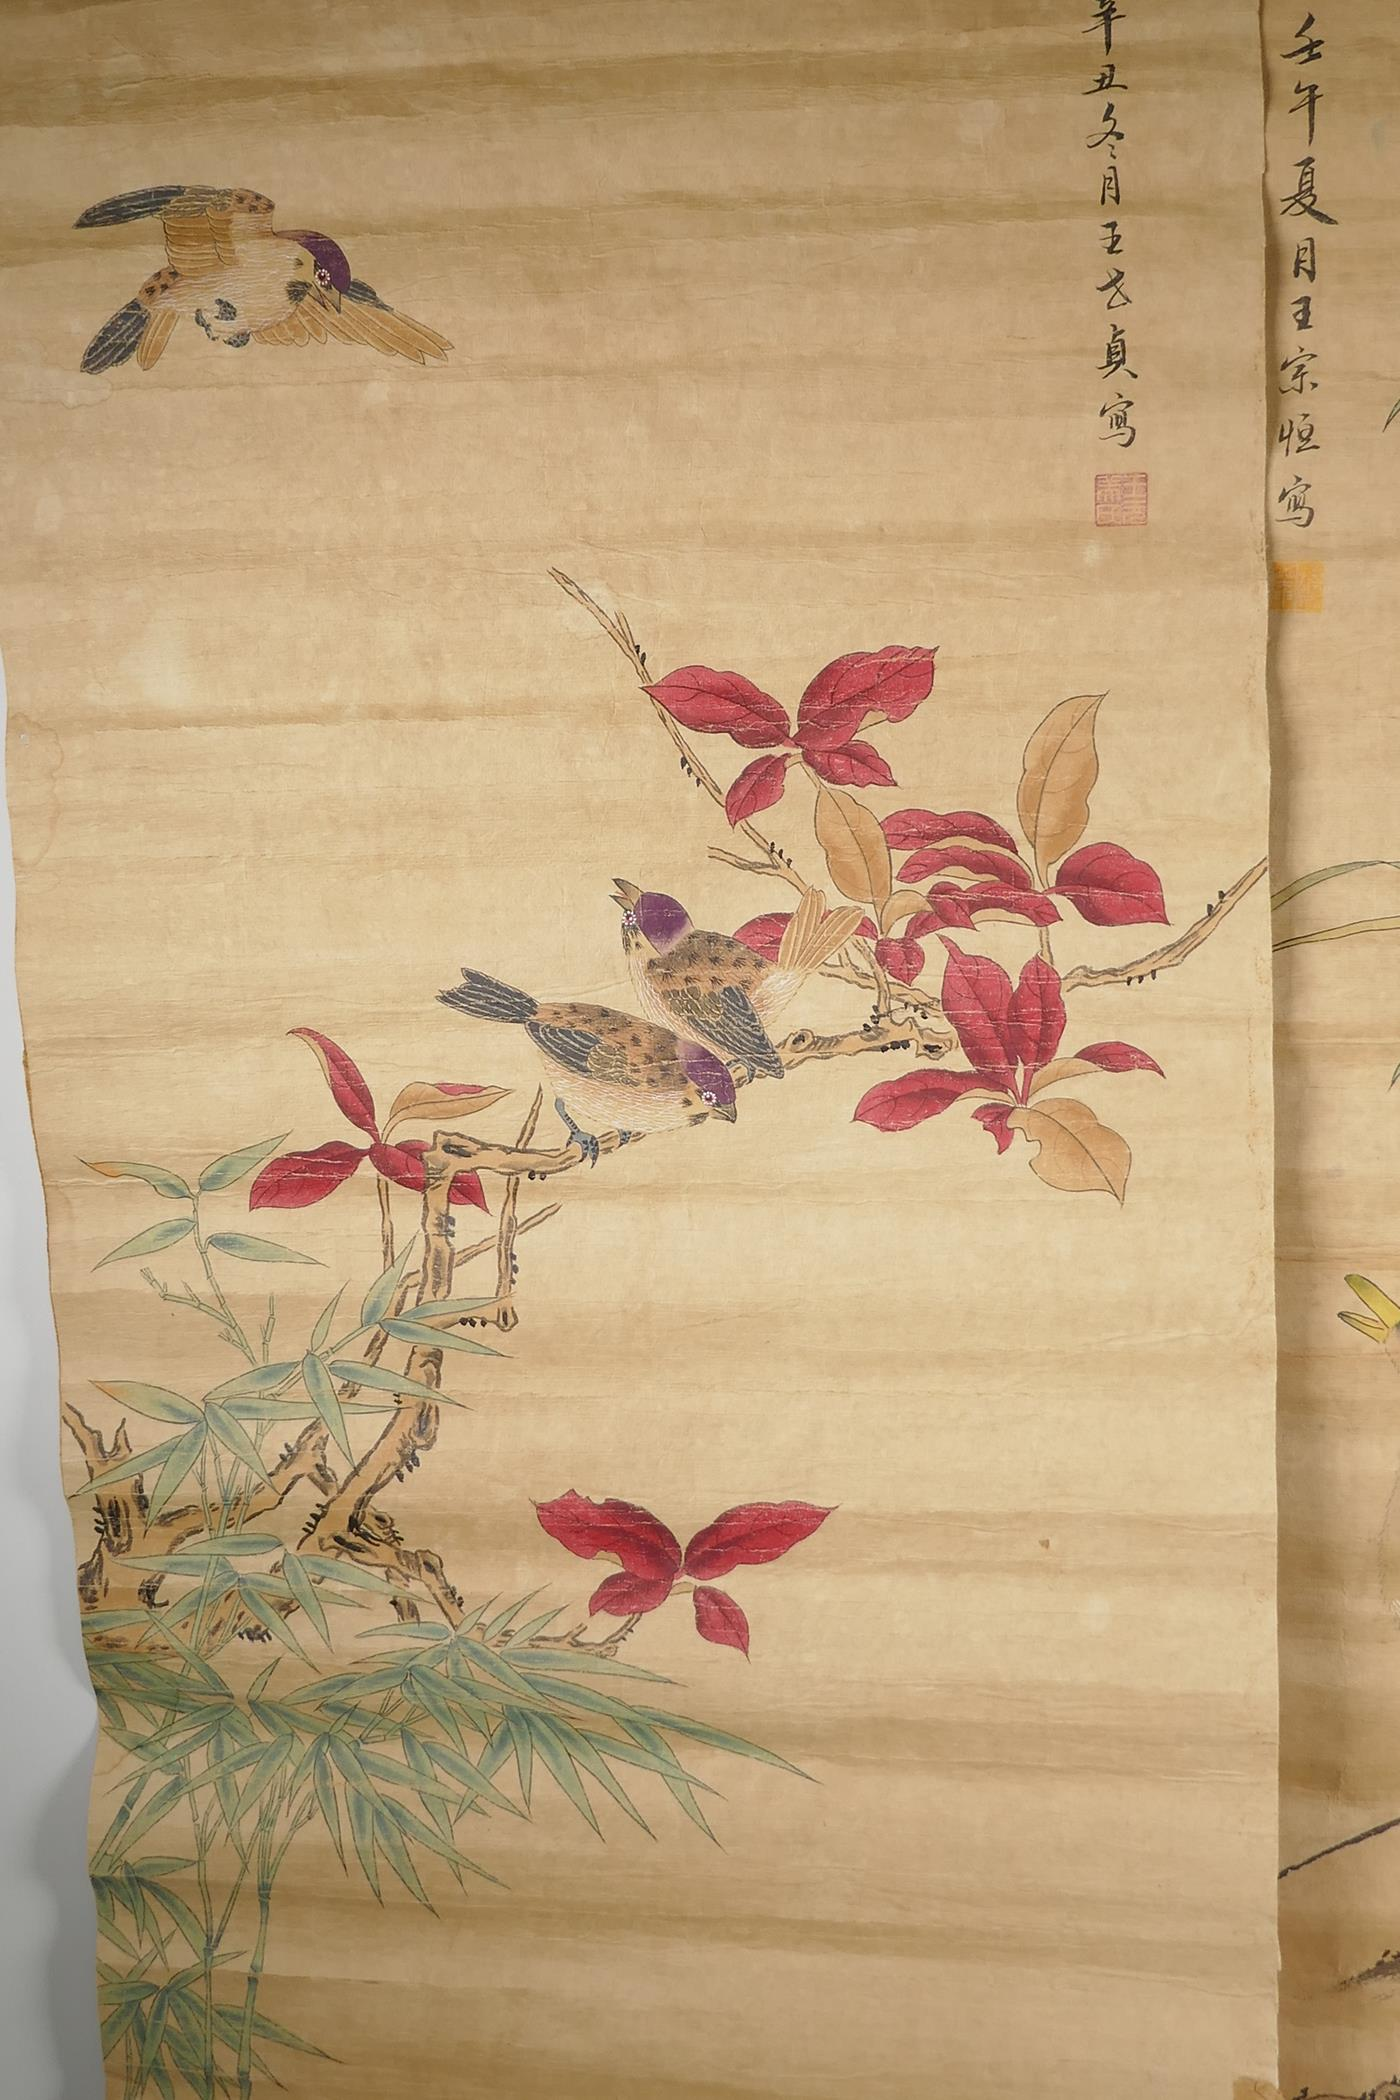 A Chinese watercolour scroll depicting waterfowl and flowers, and another similar with birds and